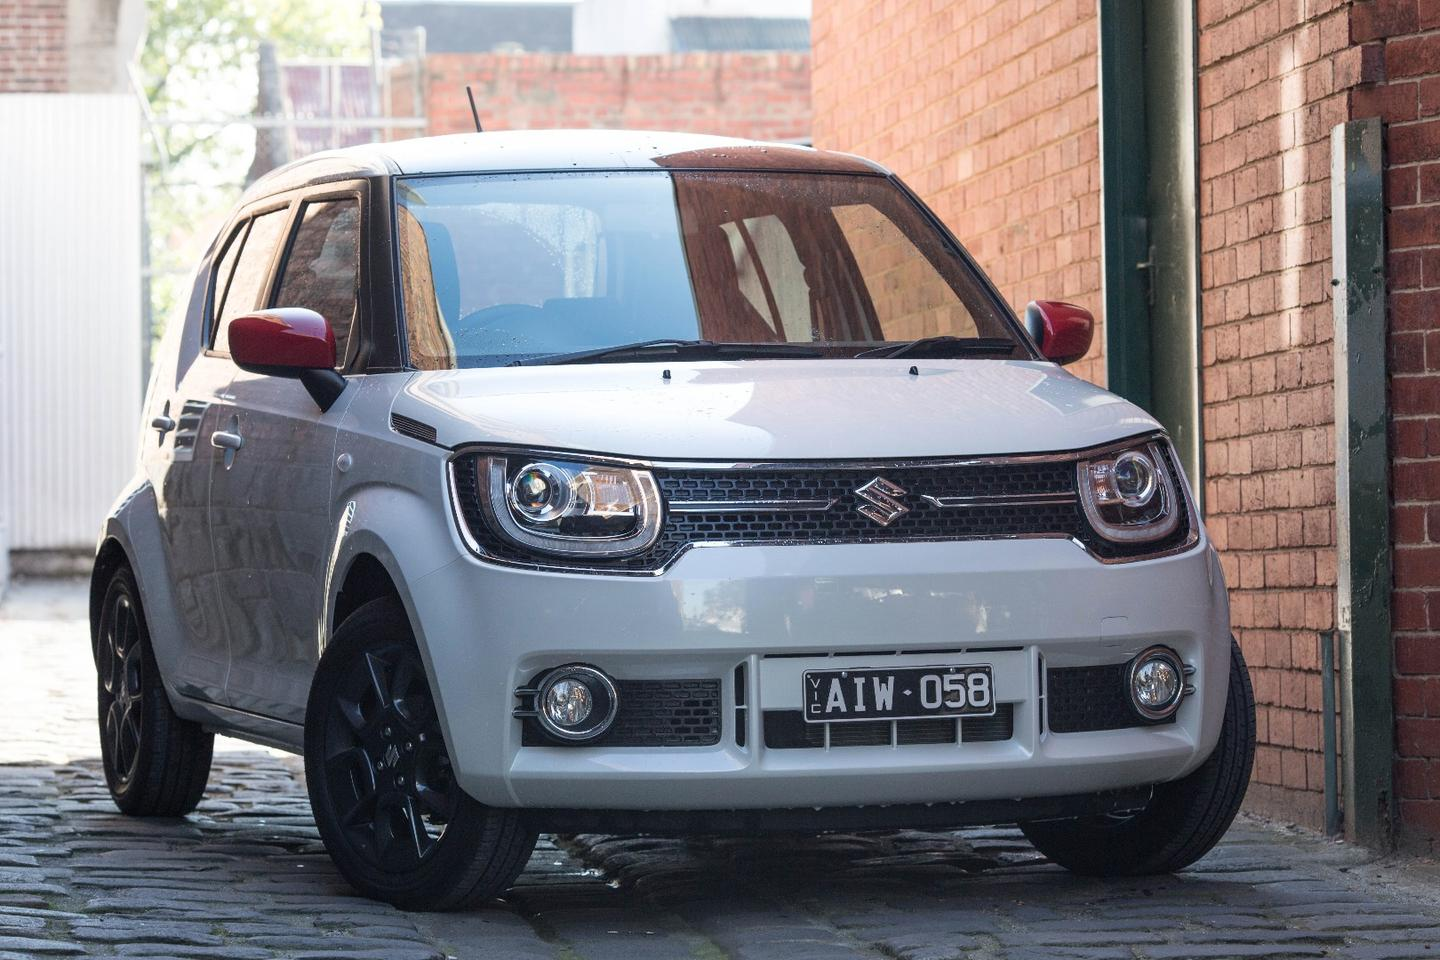 The cheery Suzuki Ignis is powered by a 1.2-liter four-cylinder engine